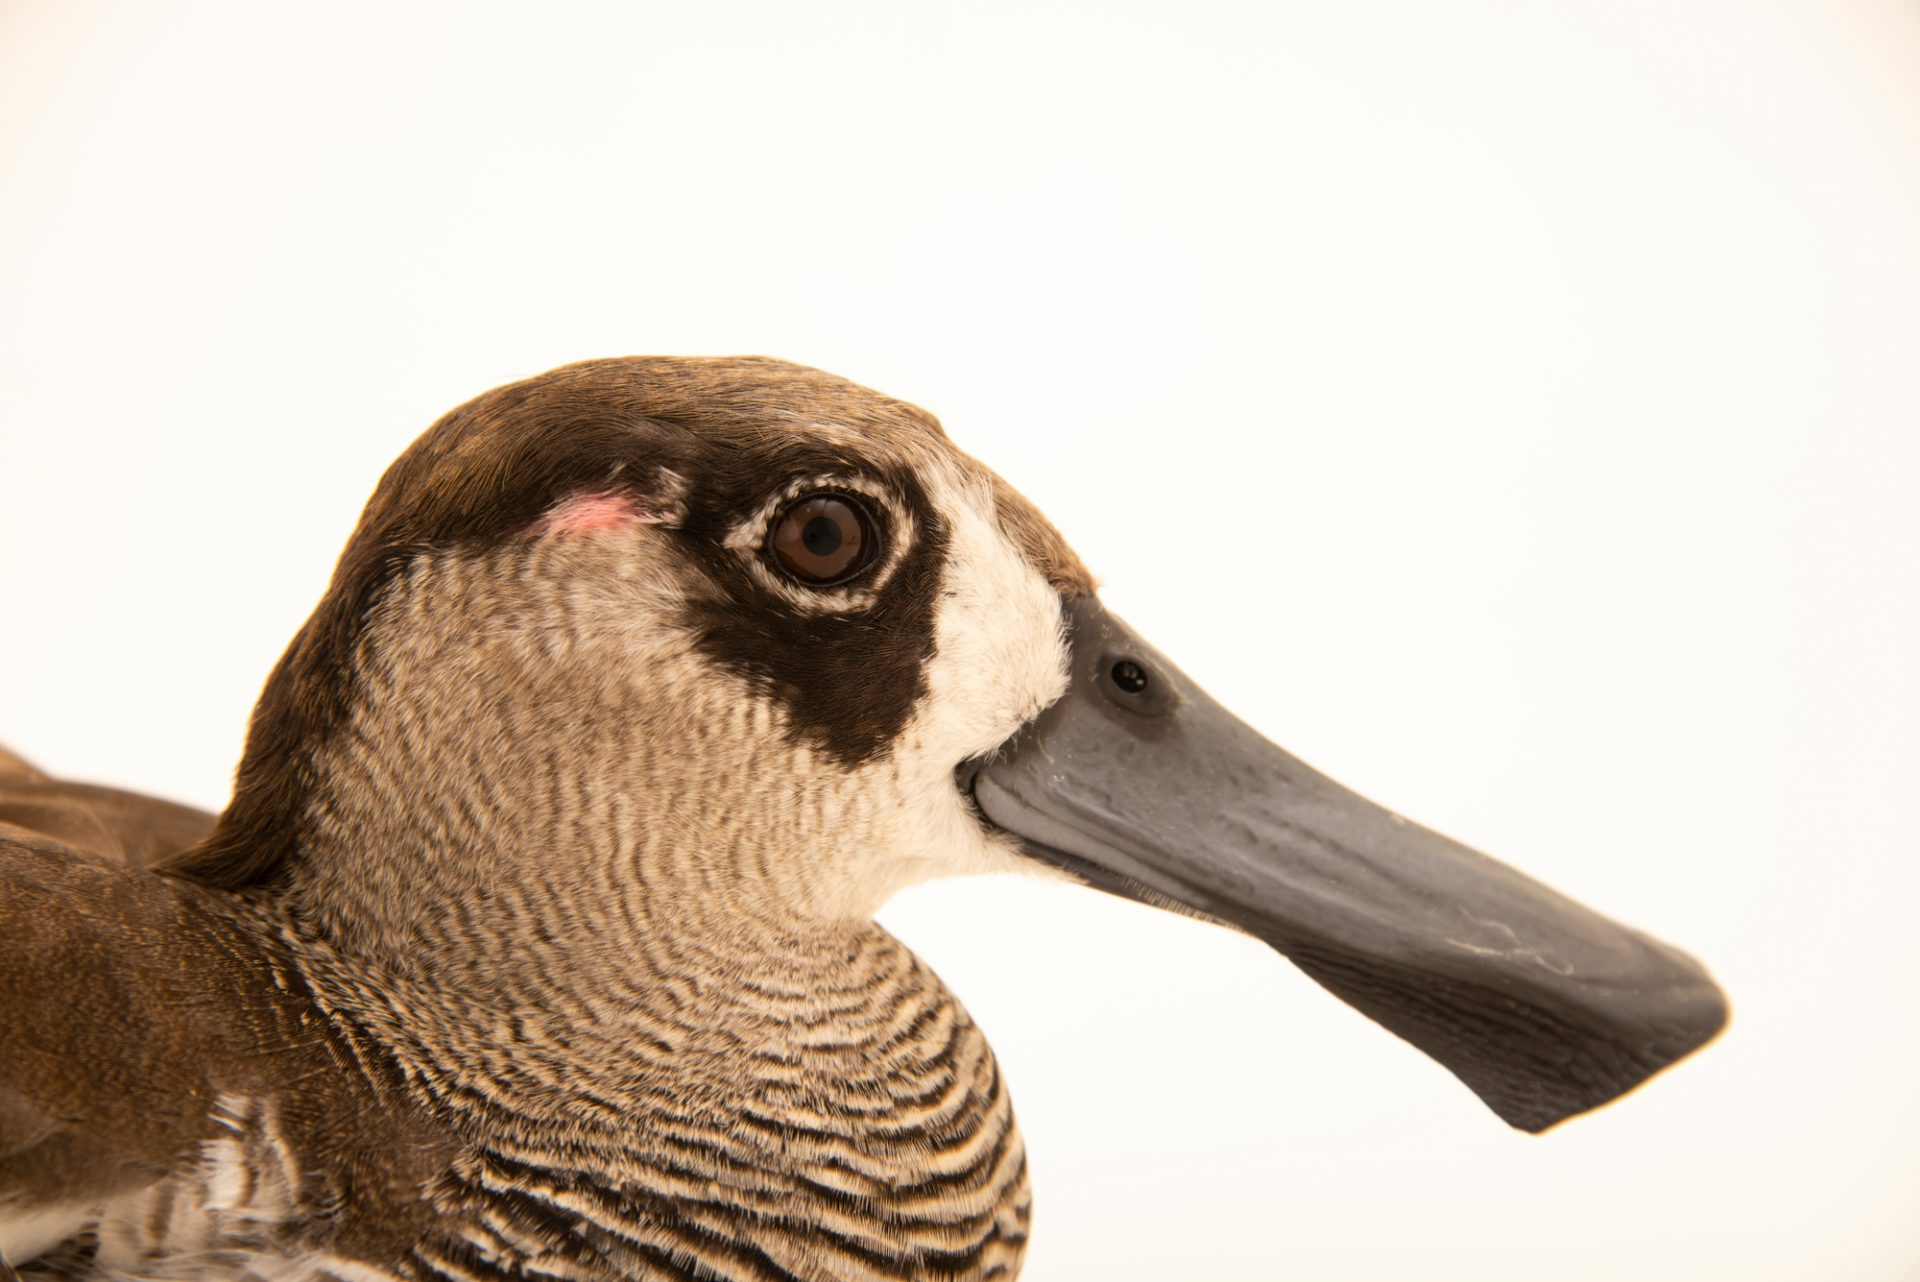 Photo: Pink eared duck (Malacorhynchus membranaceus) at Monticello Center in Italy.